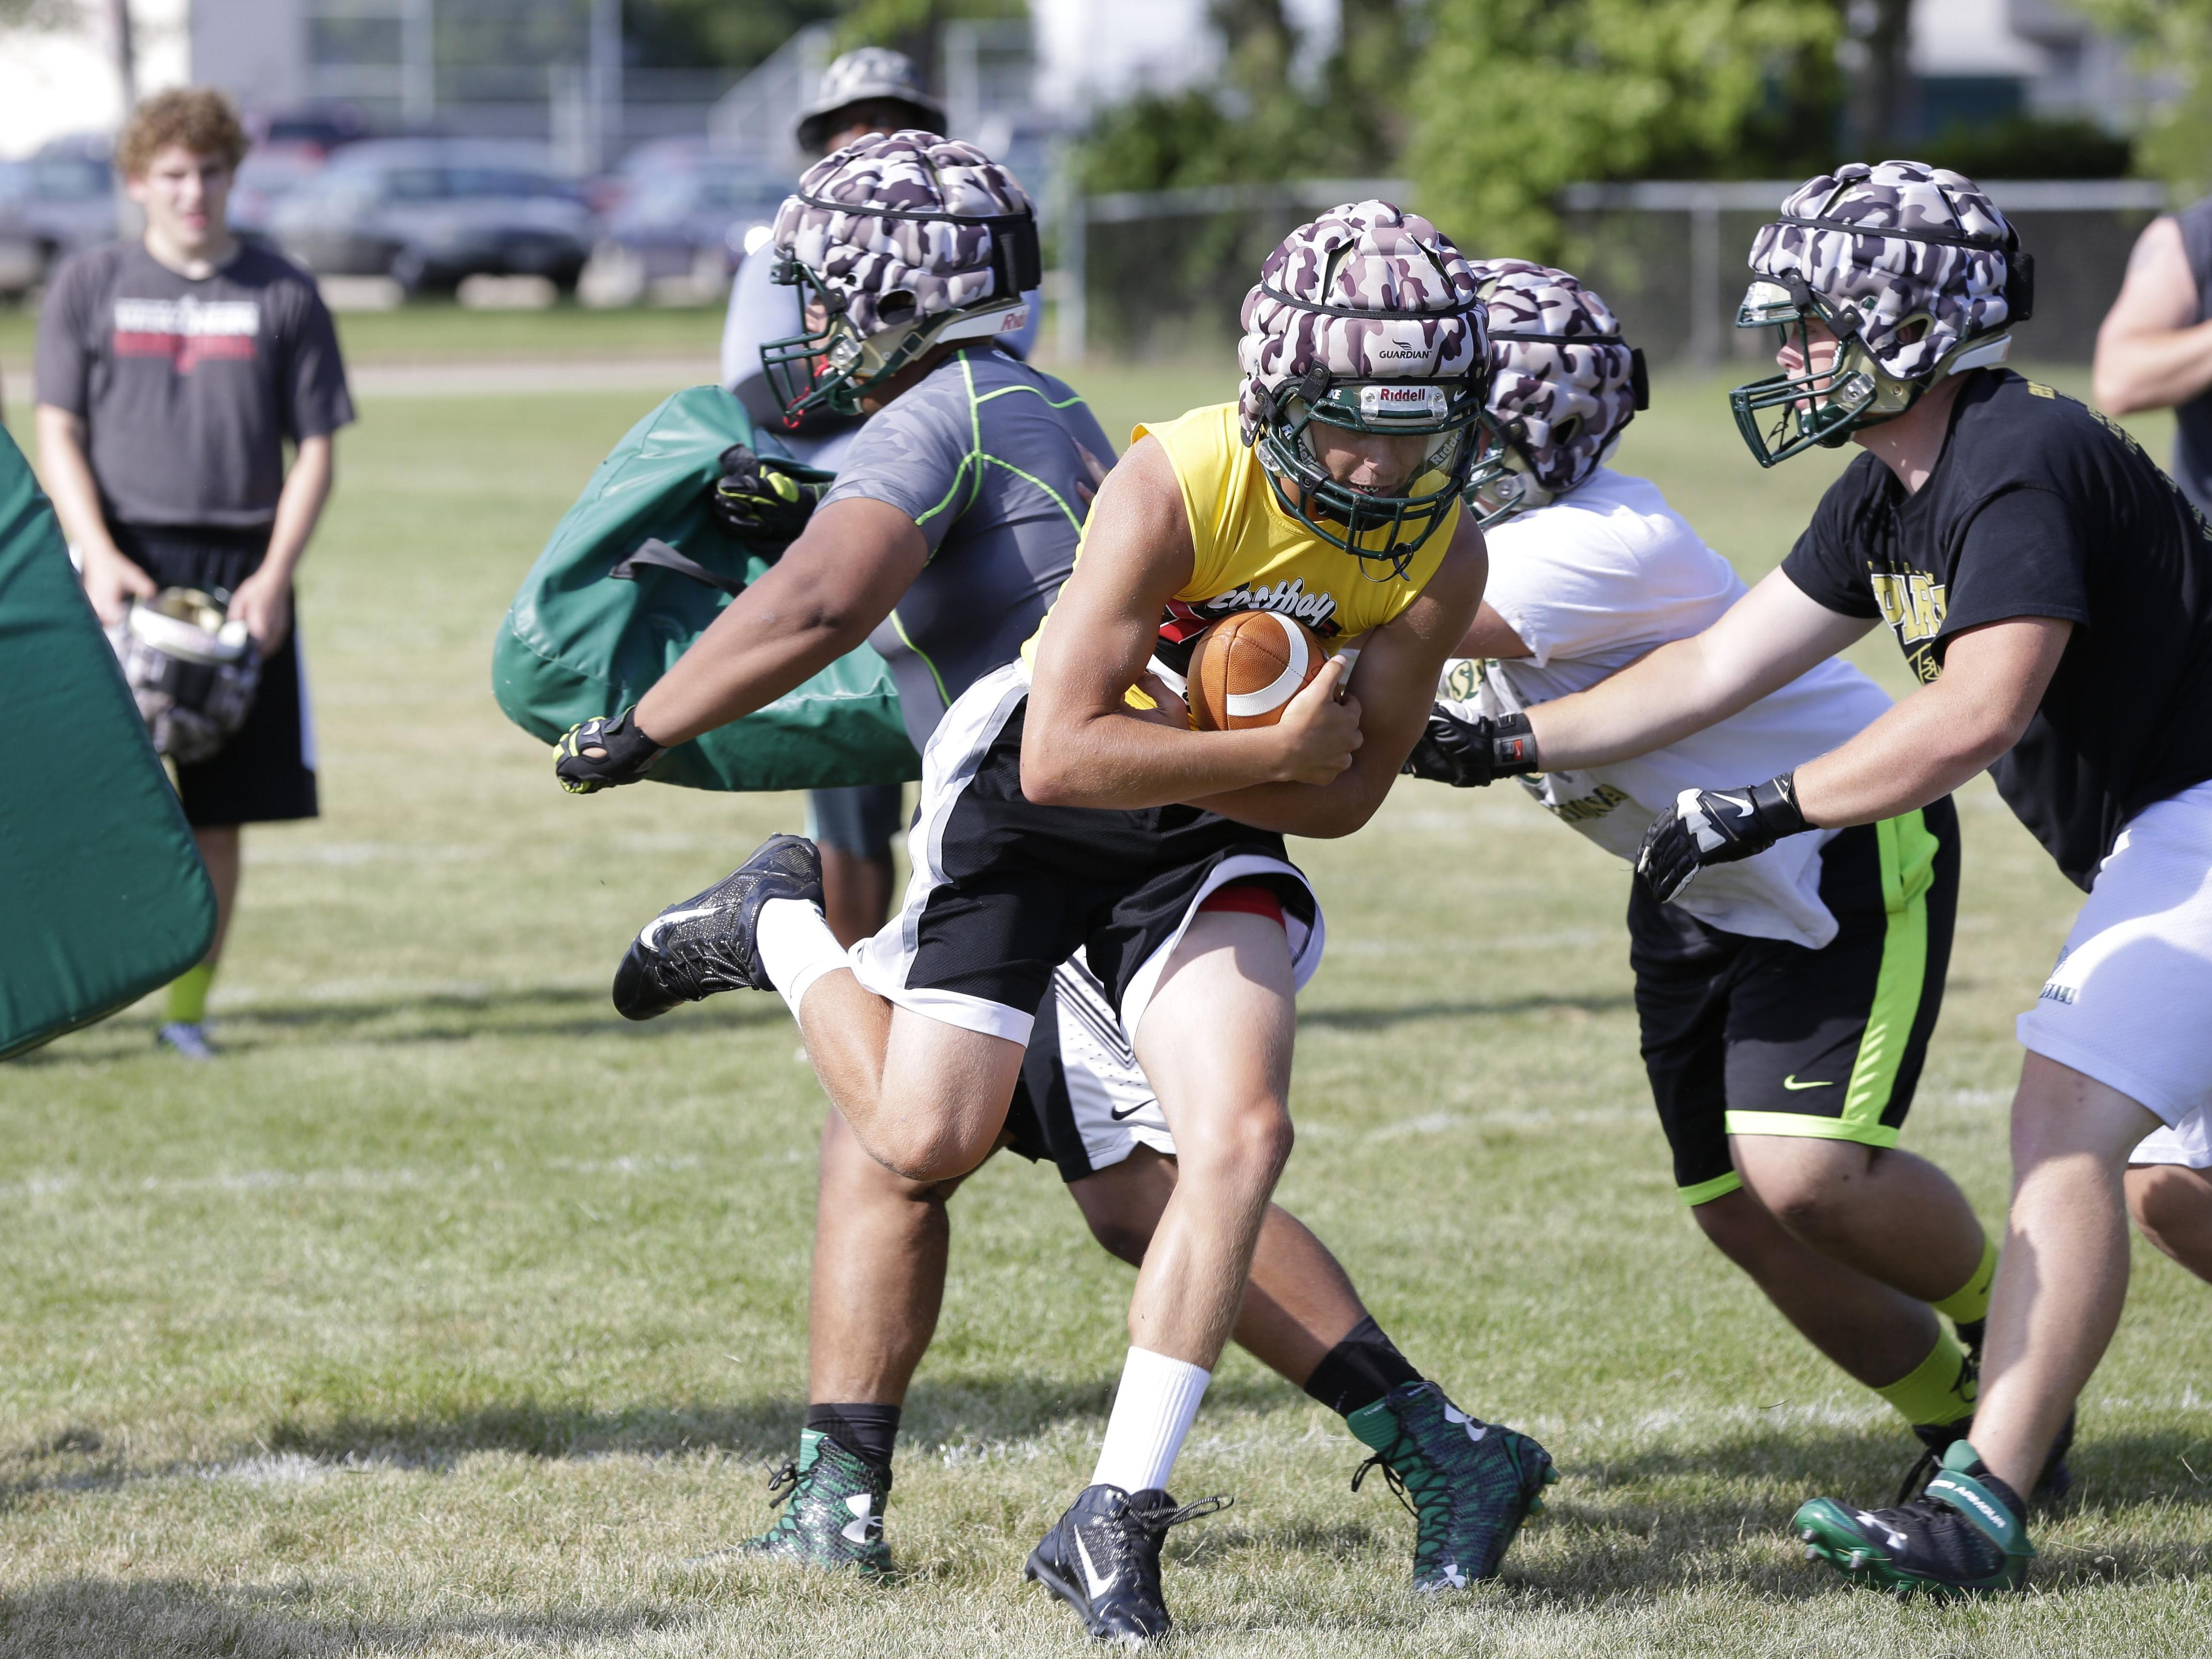 Oshkosh North's Jordan Roen does a running play during practice on Tuesday.